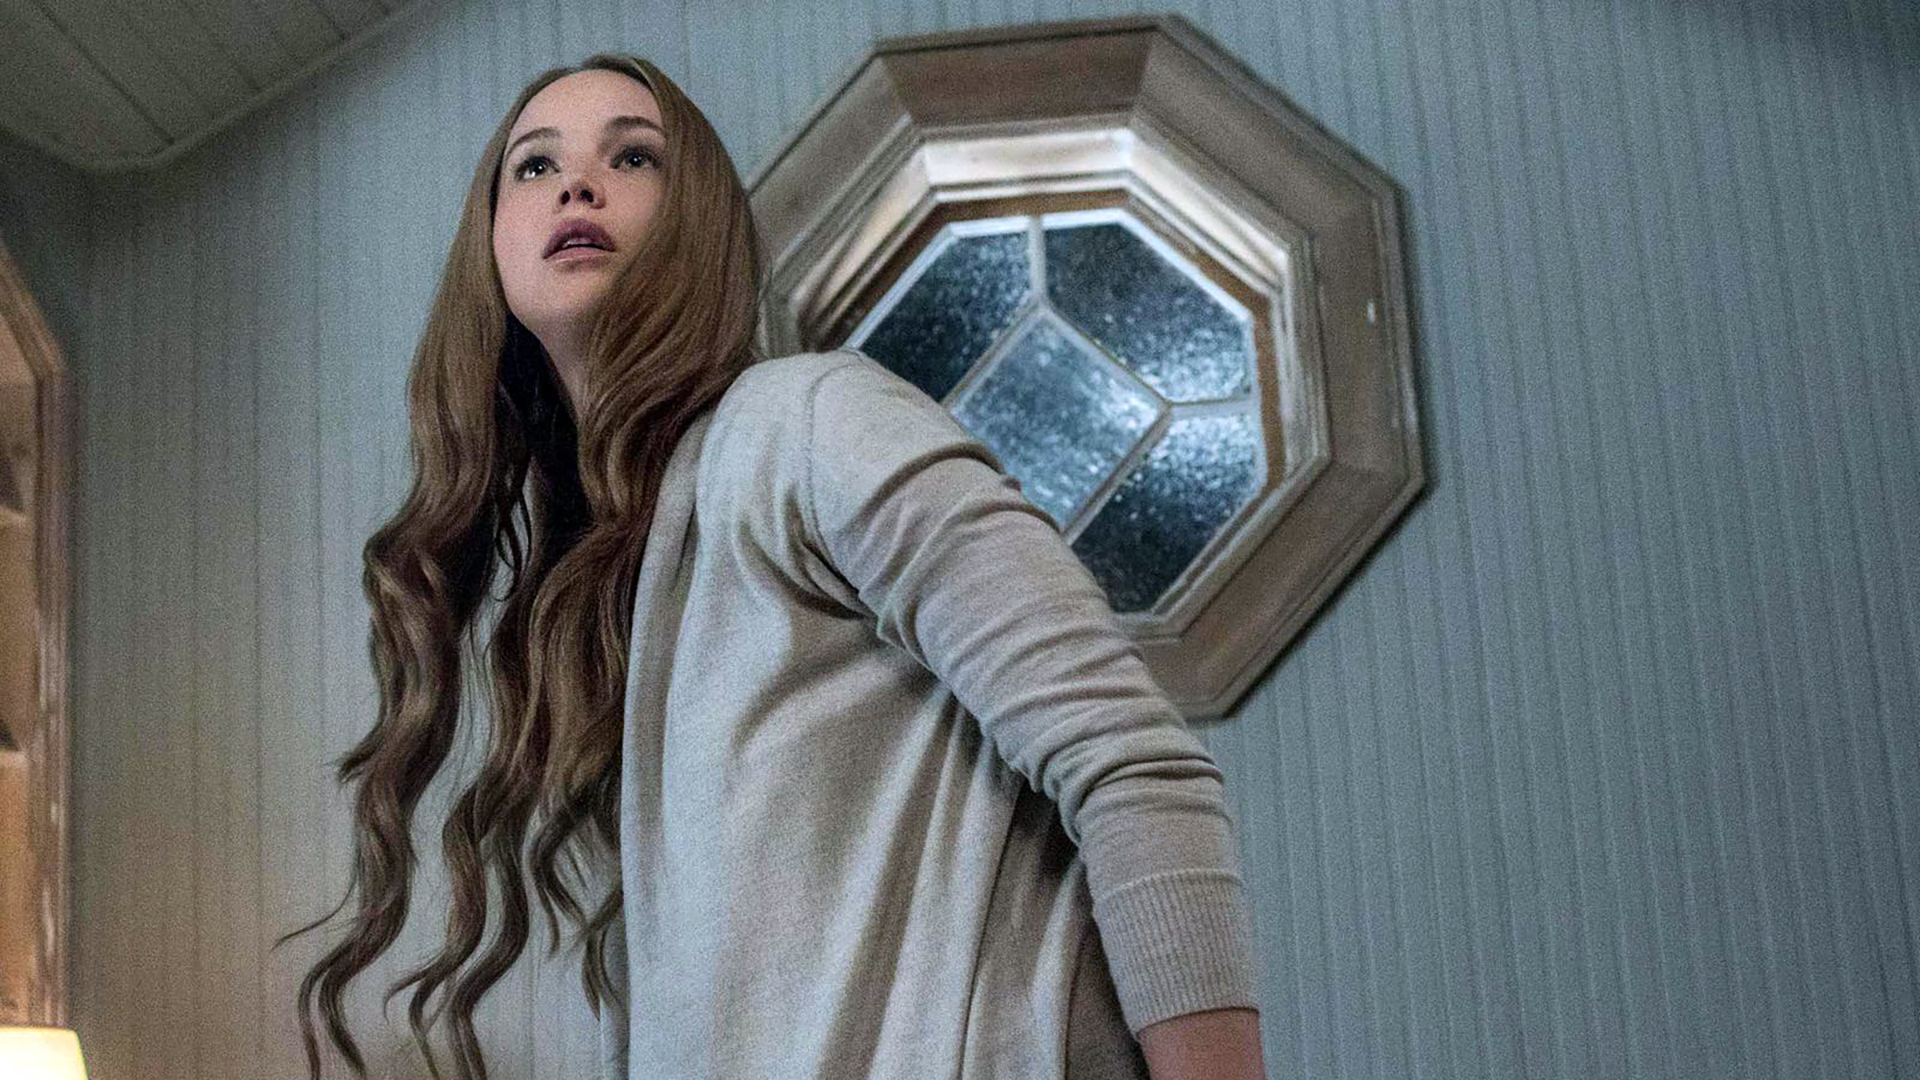 Don't read this review of 'mother!'